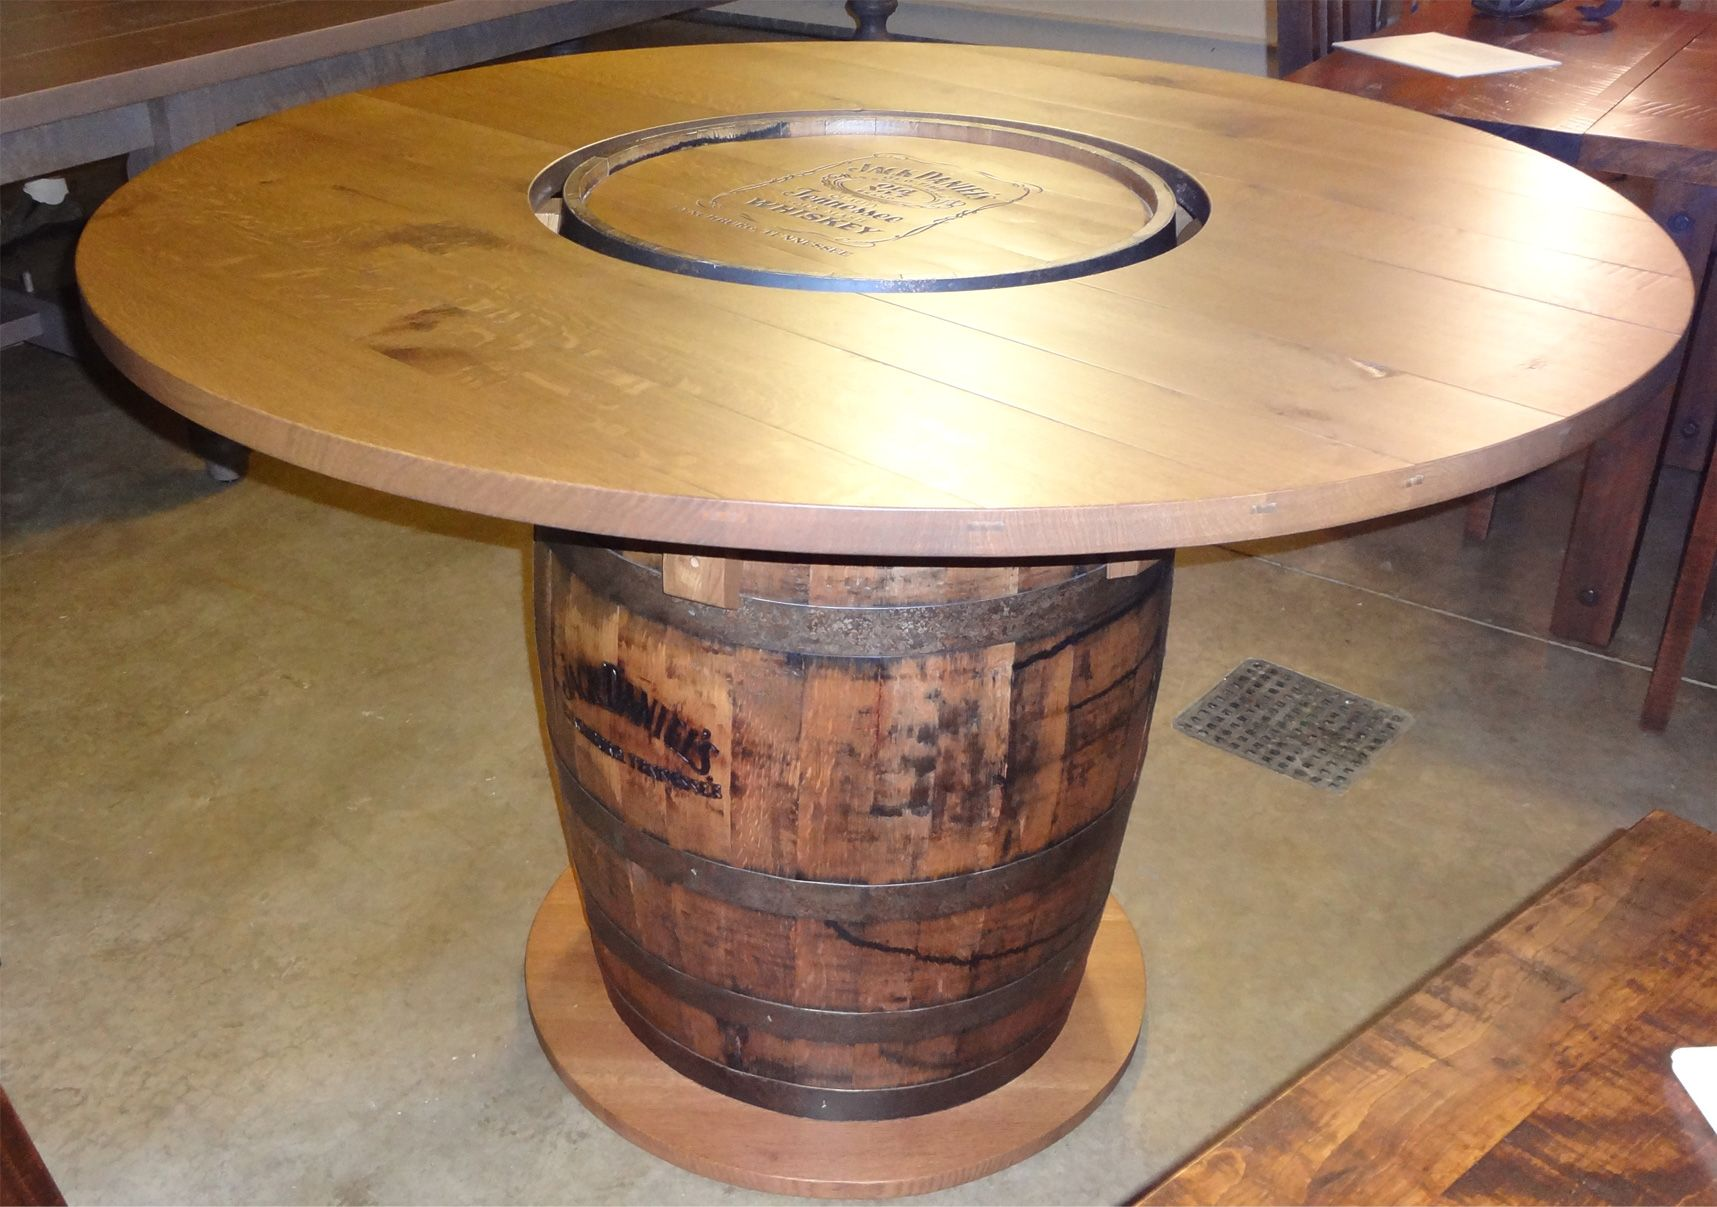 whiskey barrel pub table and chairs chair for lower back support base de barril para la mesa barmacia pinterest